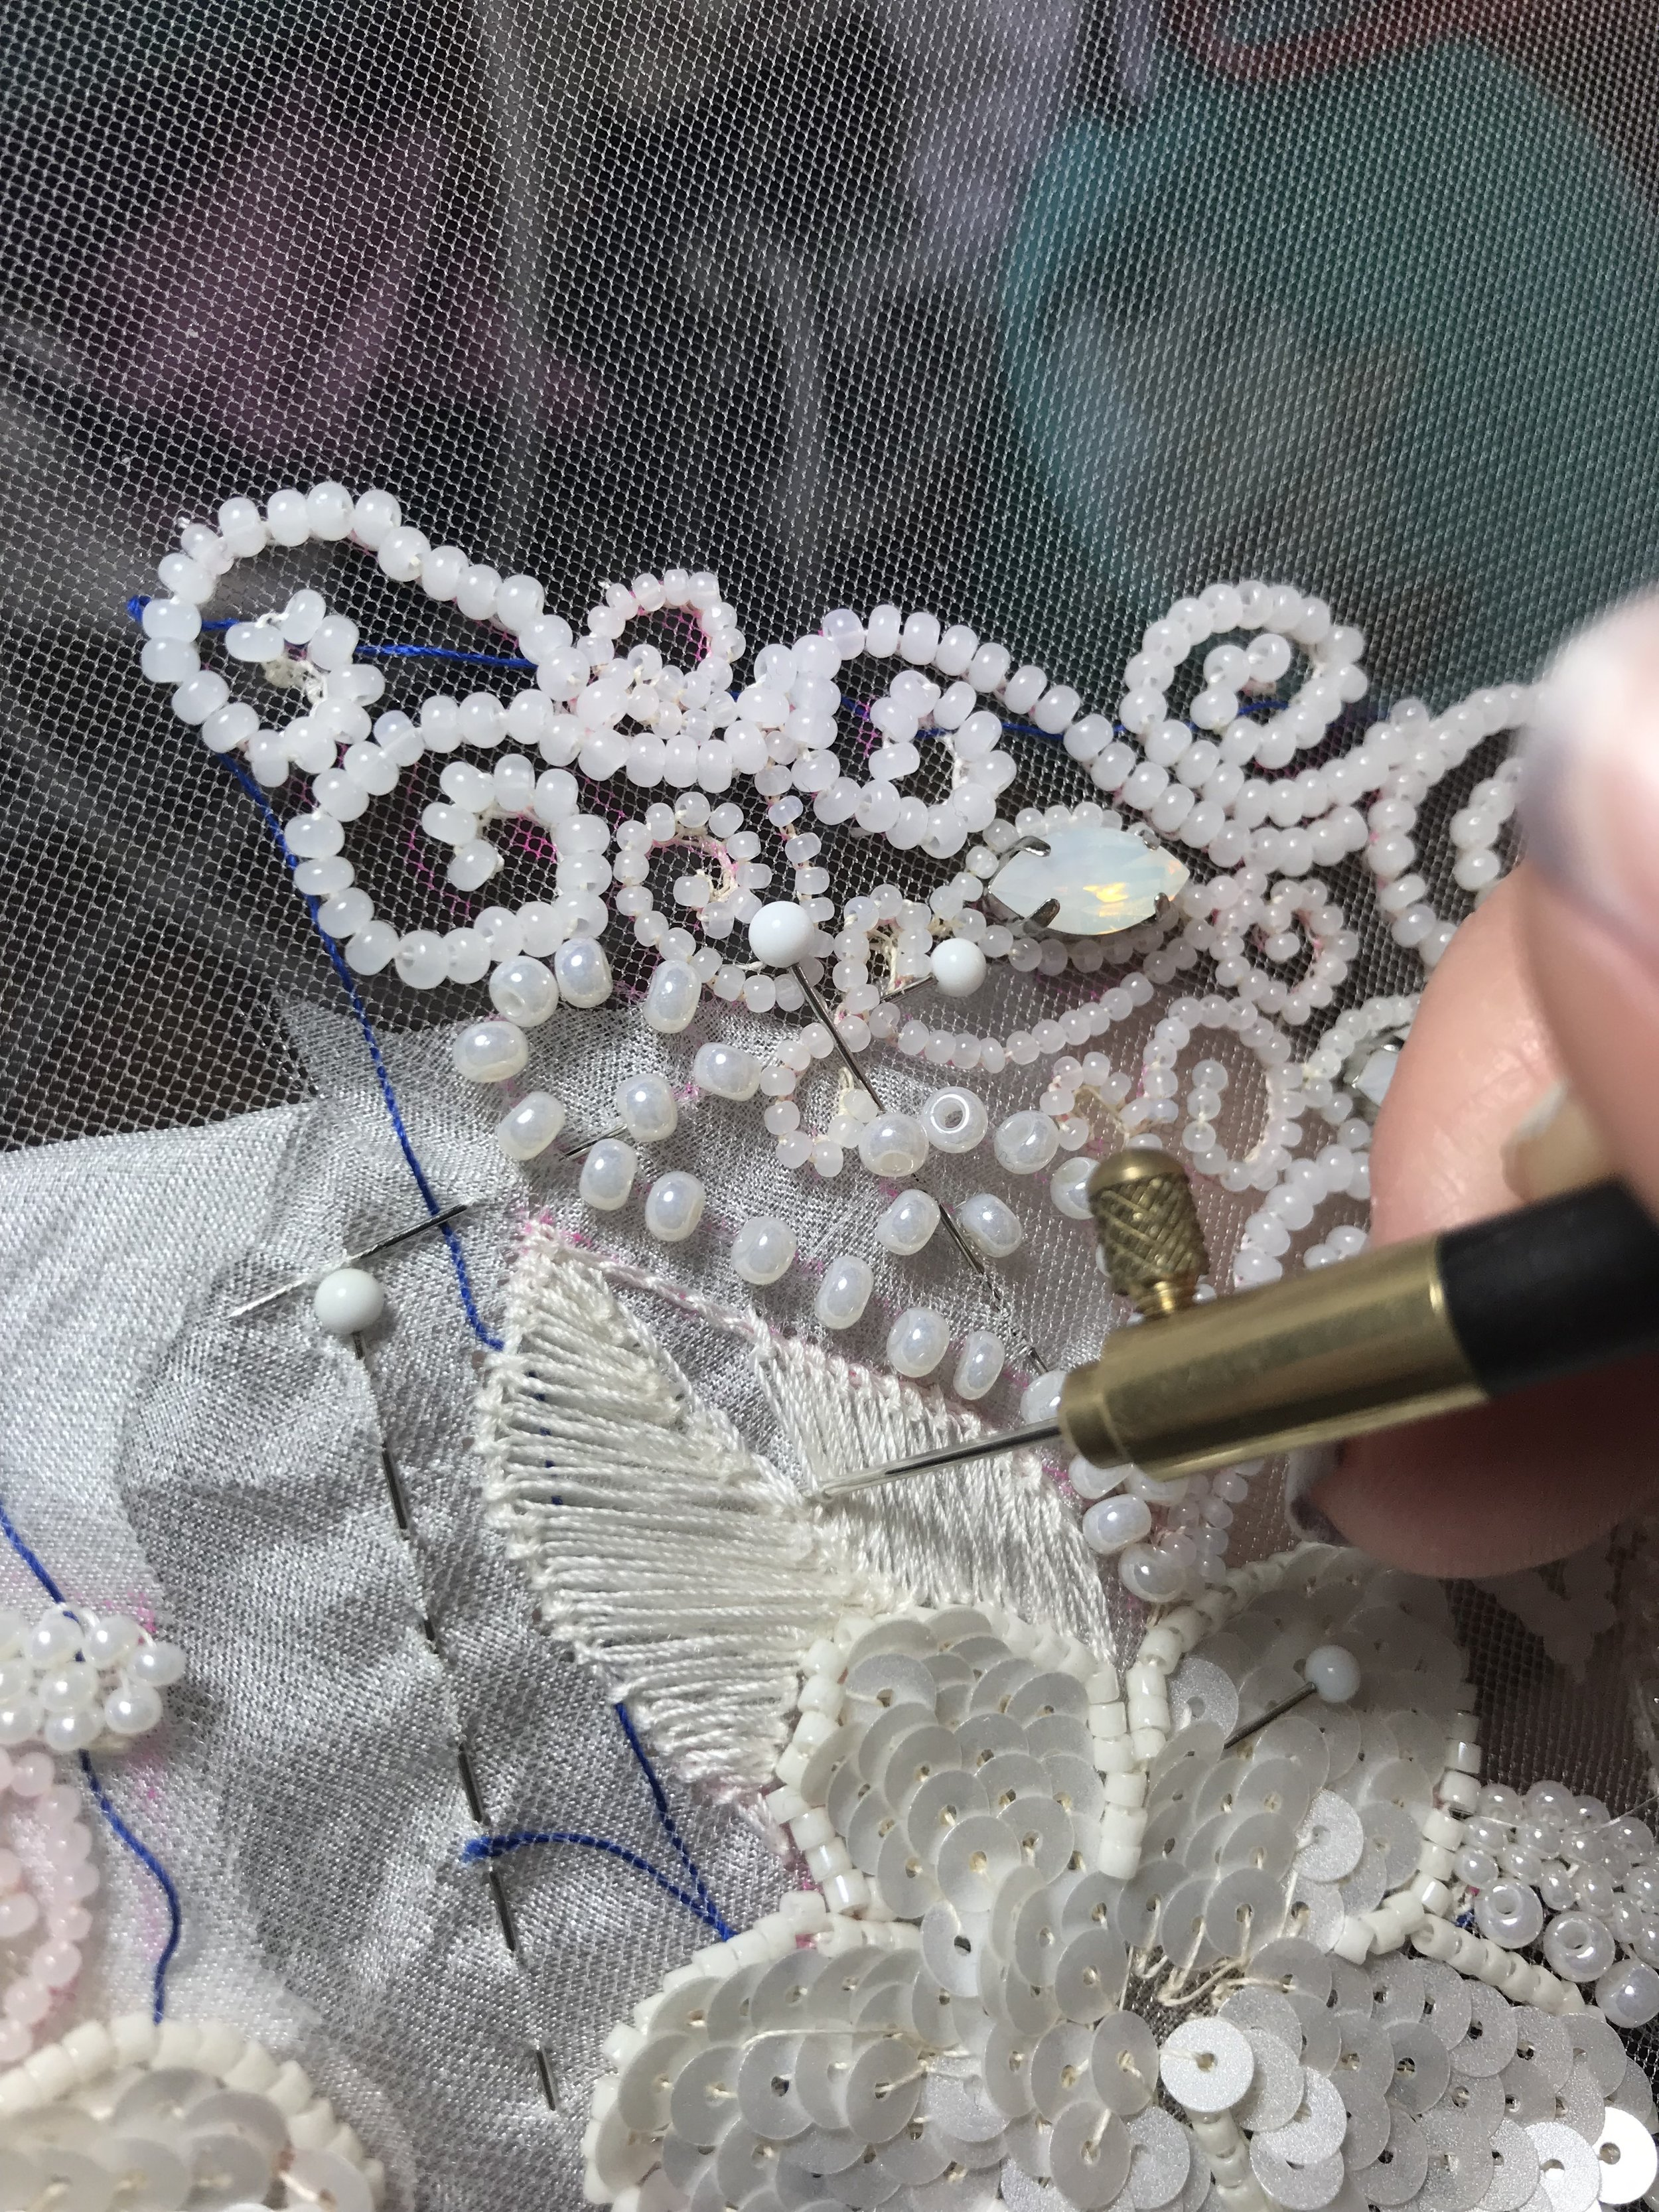 embroidering the last piece of the wedding dress